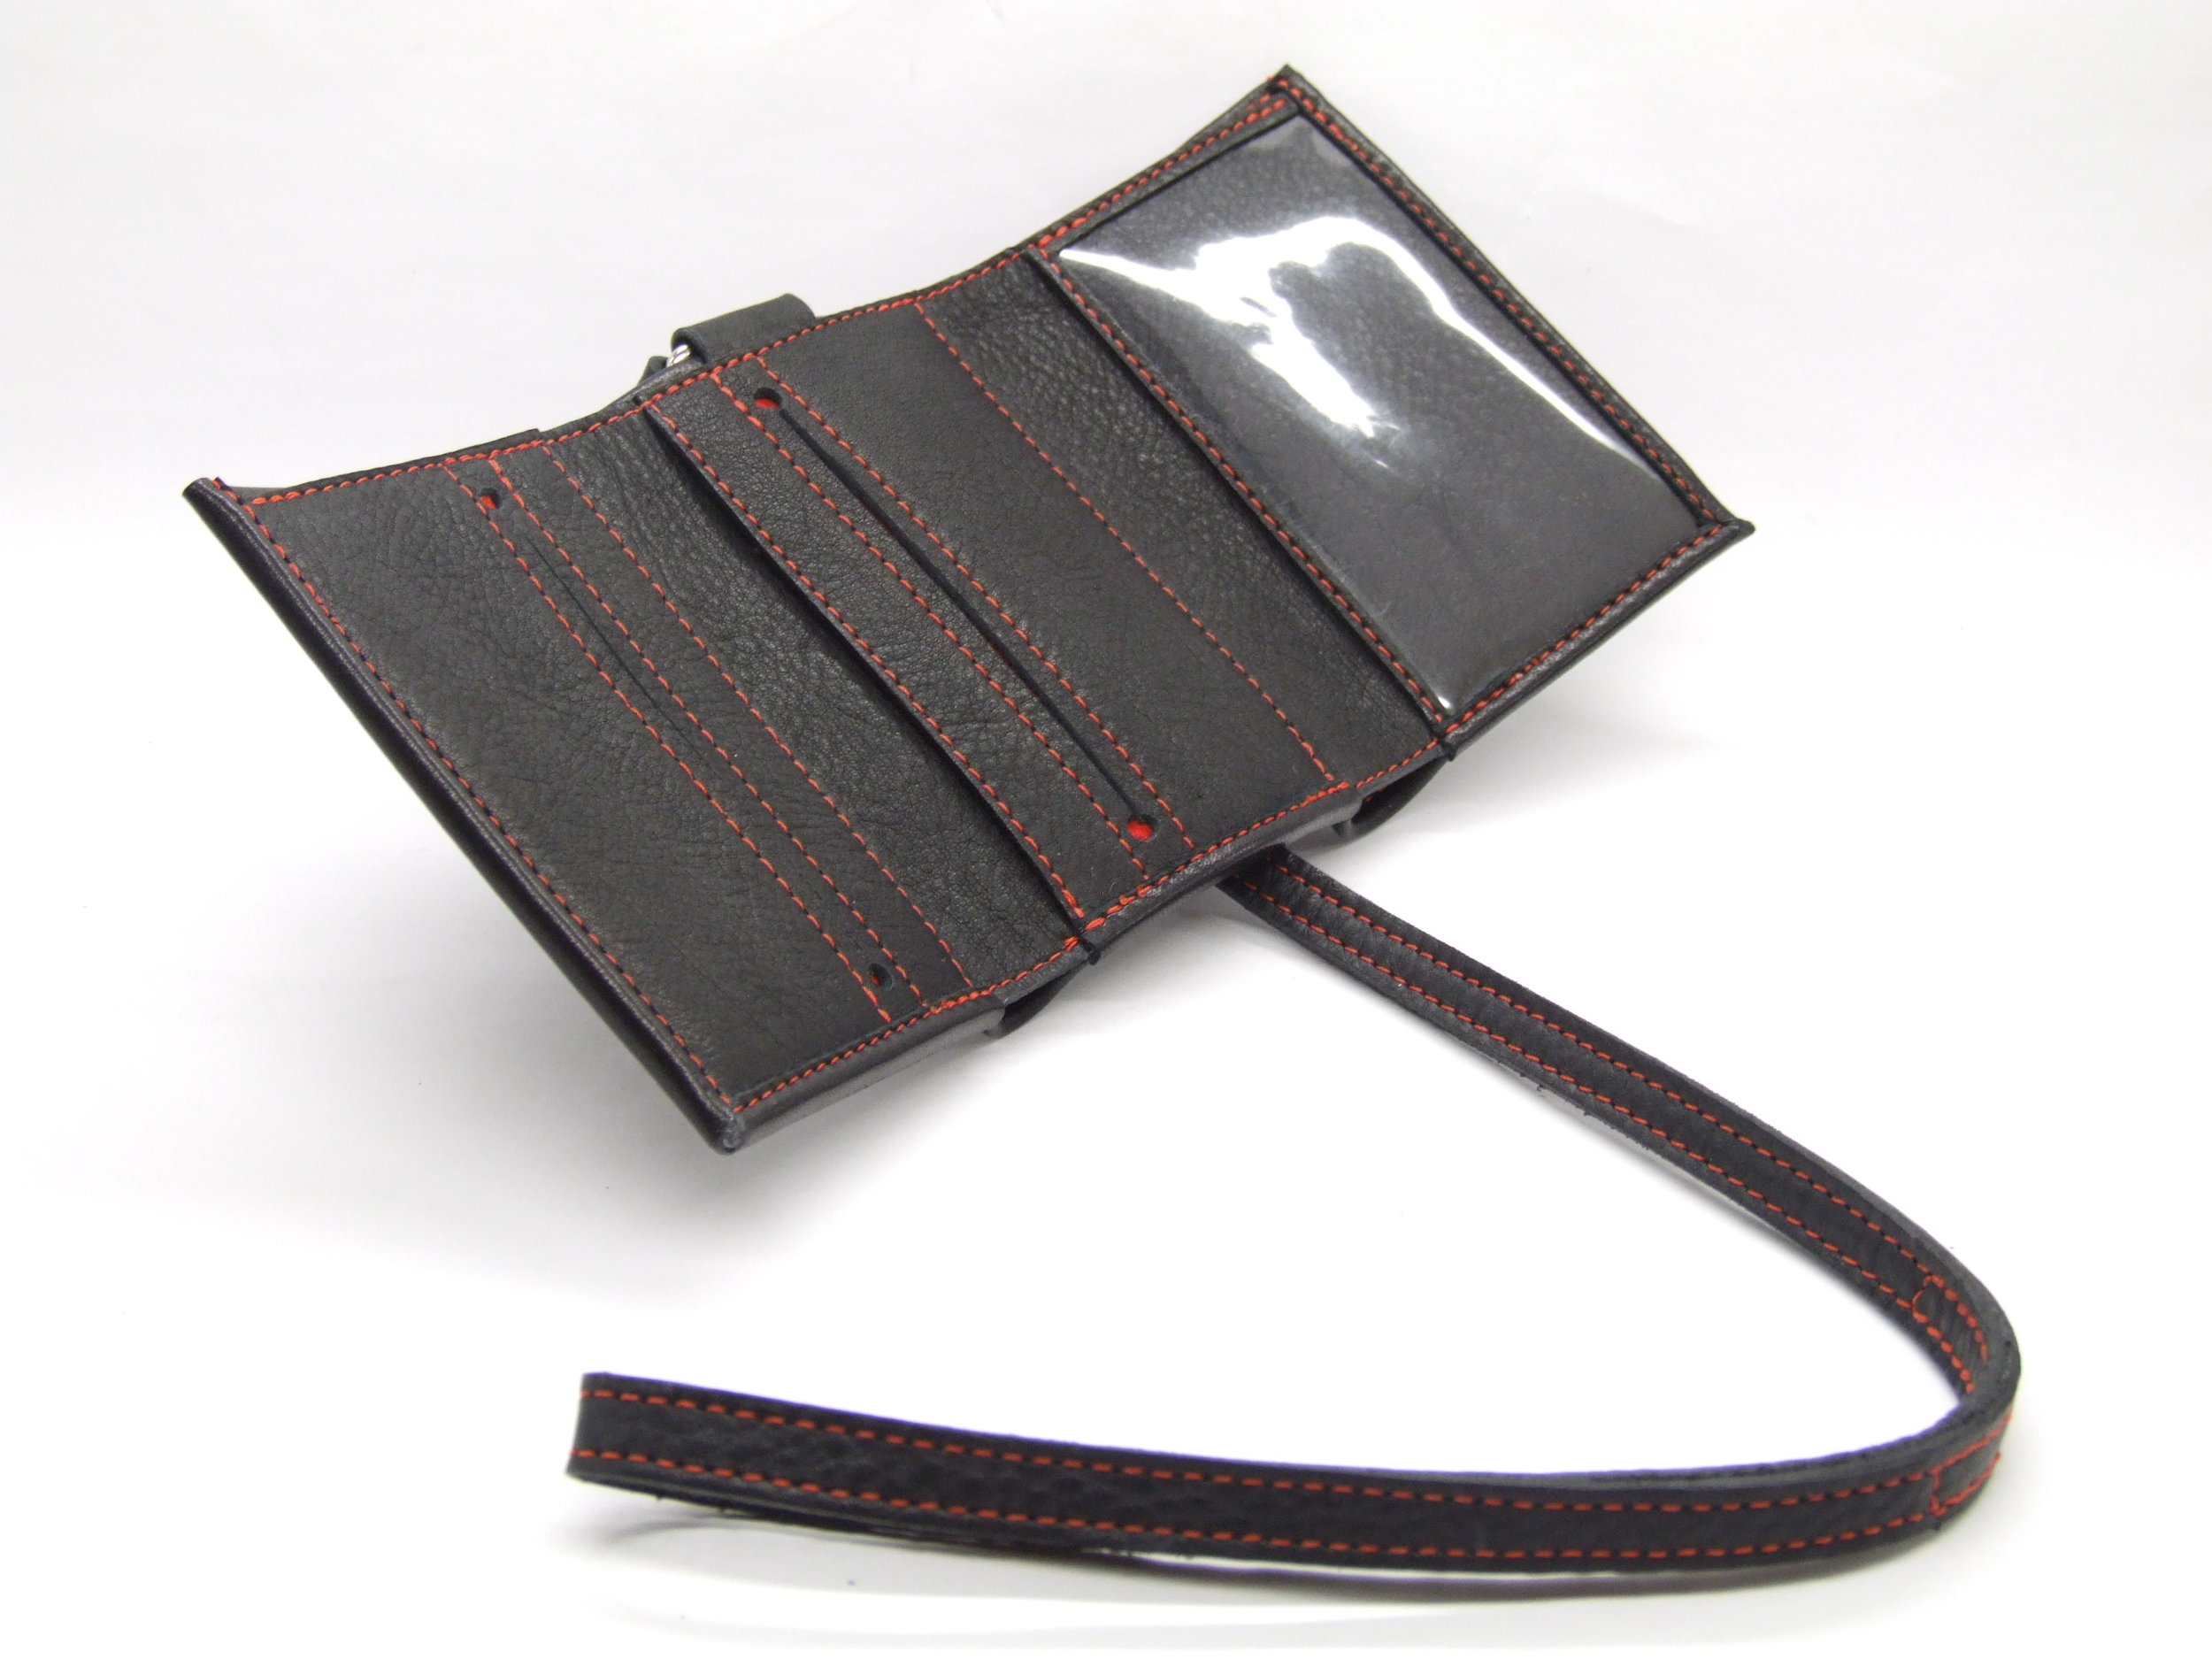 bespoke-red-and-black-leather-trucker-wallet-inside.jpg